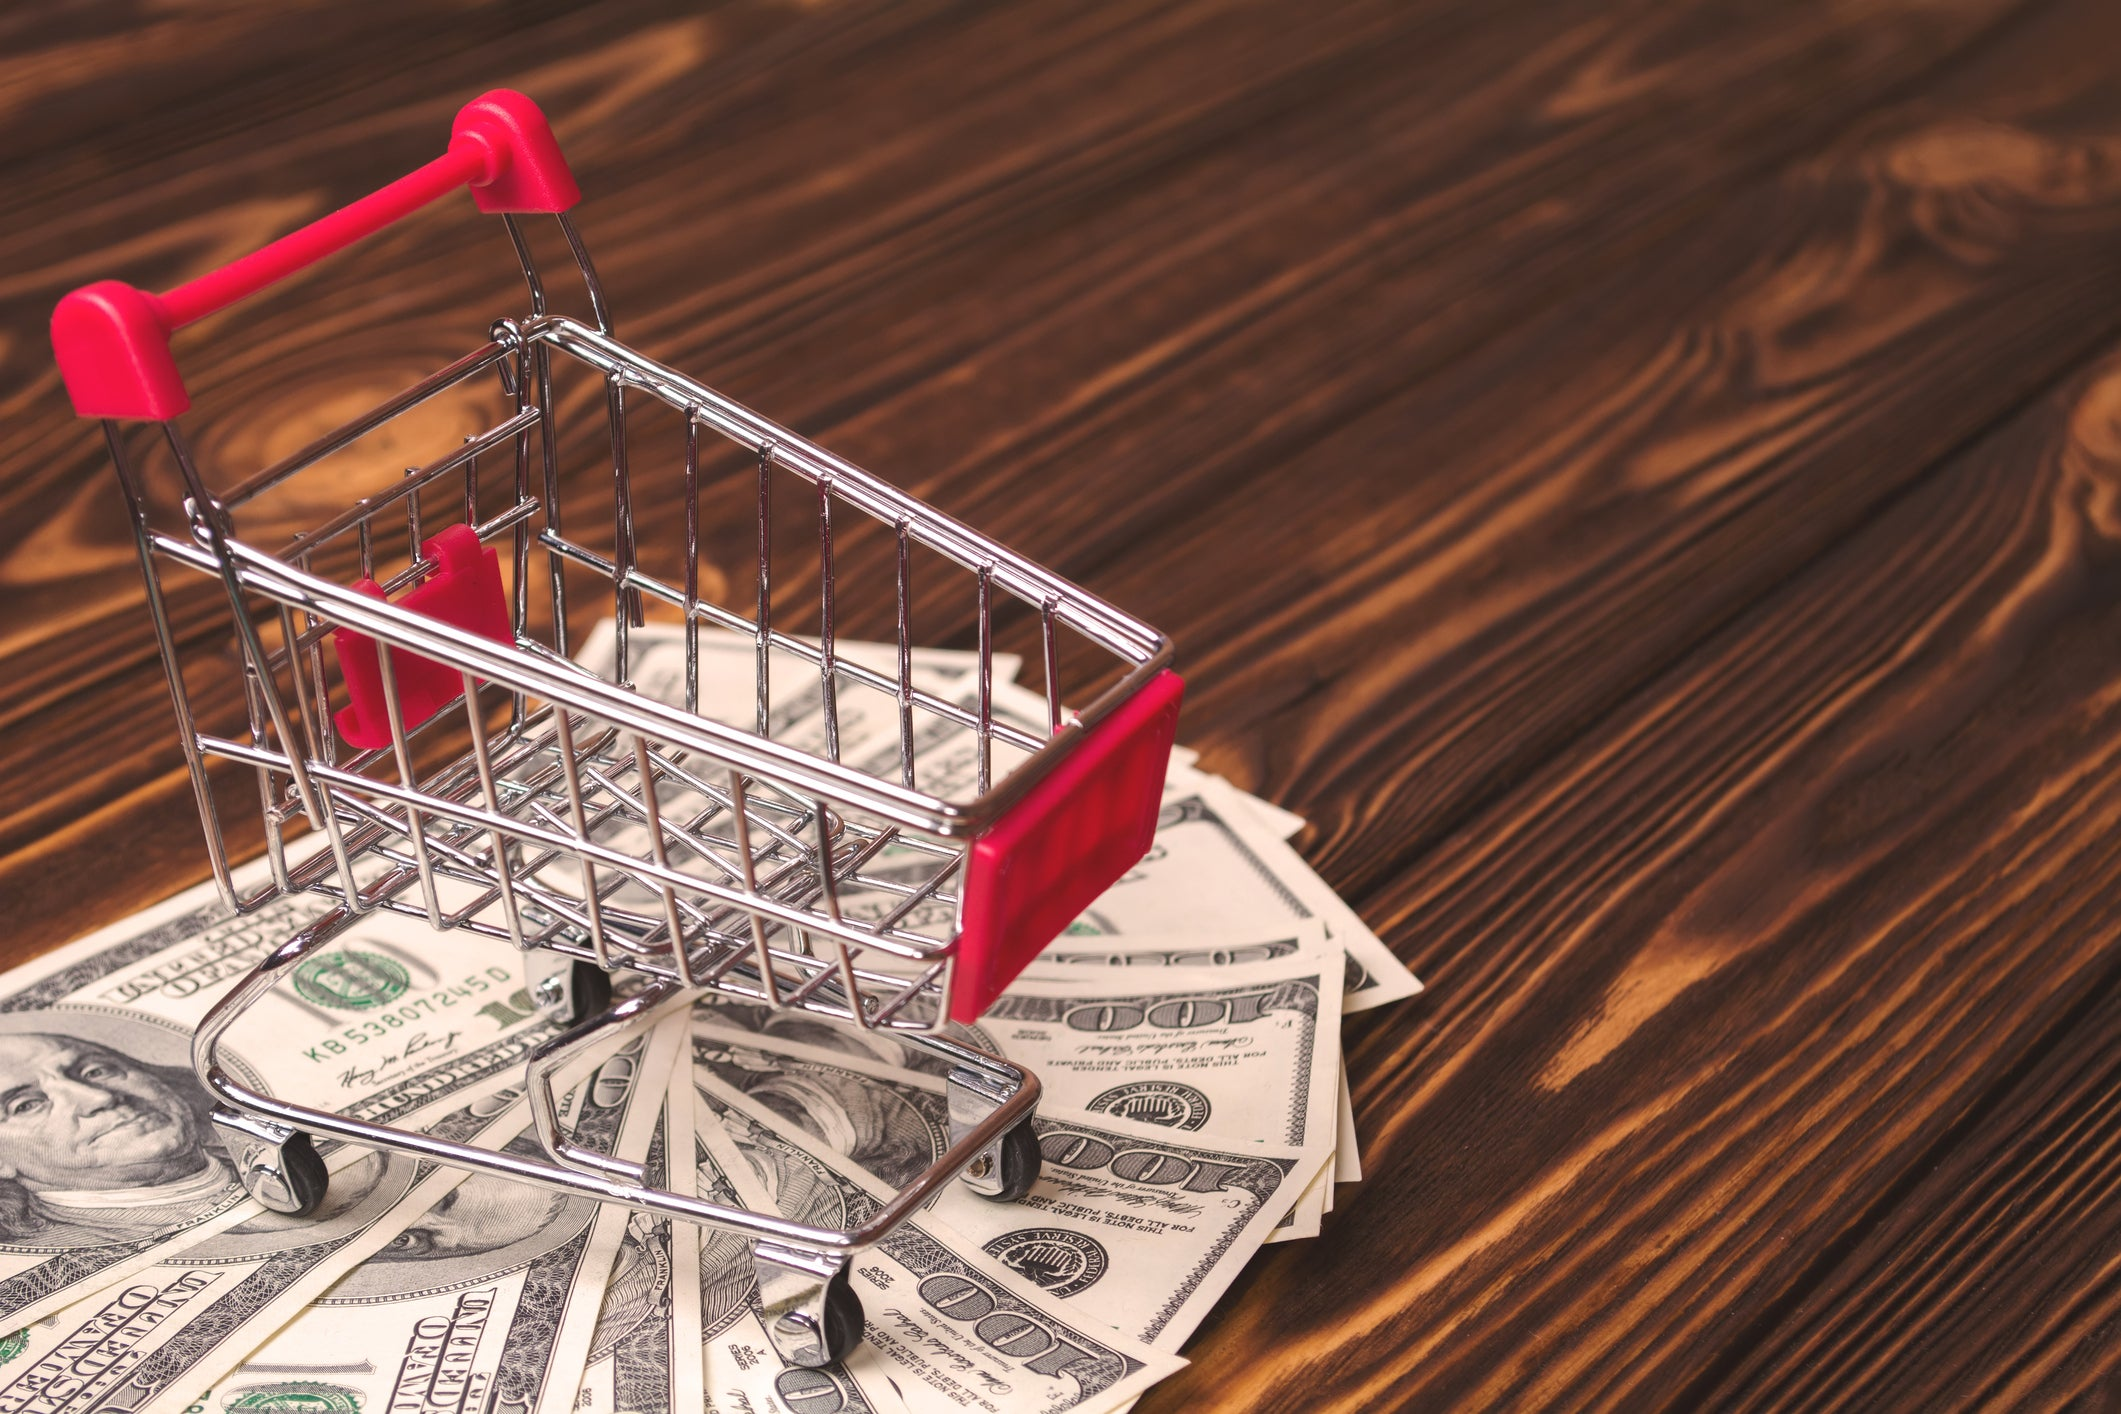 A miniature shopping cart with cash underneath standing on a wooden floor.